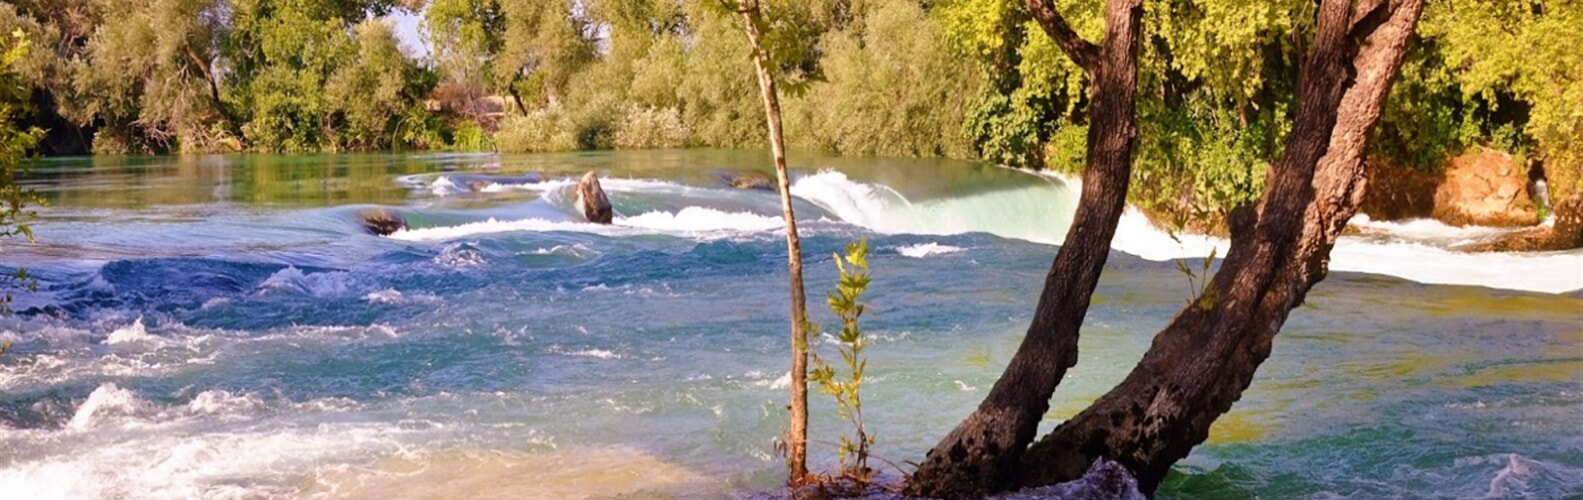 THE MOST PREFERRED DISTRICT MANAVGAT FOR HOLIDAY